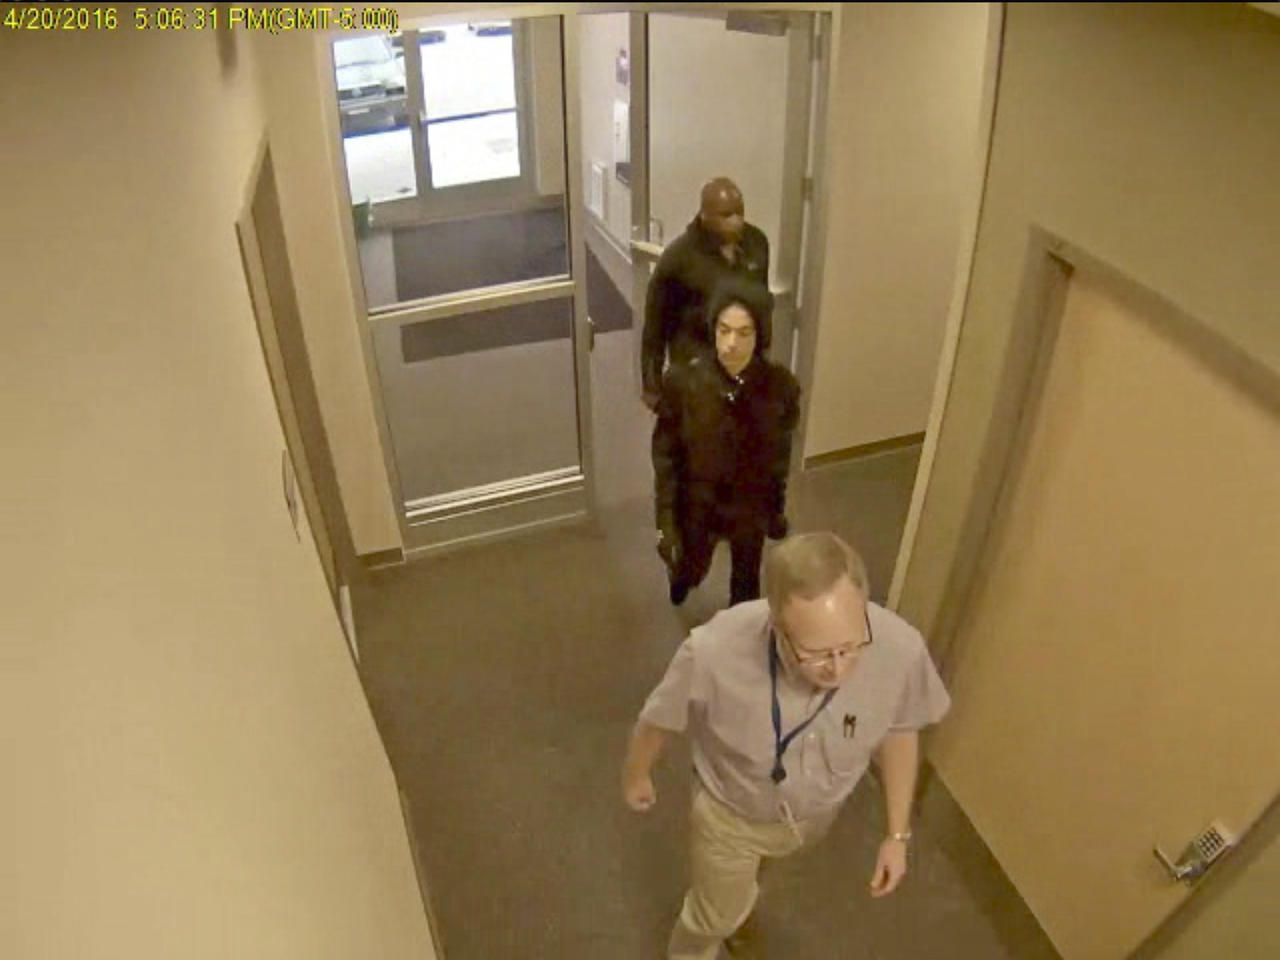 <p> In this image made from surveillance video provided Thursday, April 19, 2018, by the Carver County Sheriff's Office, as part of an investigative file into Prince's death, the superstar, center, enters a clinic of Dr. Michael Todd Schulenberg on April 20, 2016, the day before he was found dead of an accidental fentanyl overdose. The doctor is not facing criminal charges and his attorney says he had no role in Prince's death. (Carver County Sheriff's Office via AP) </p>